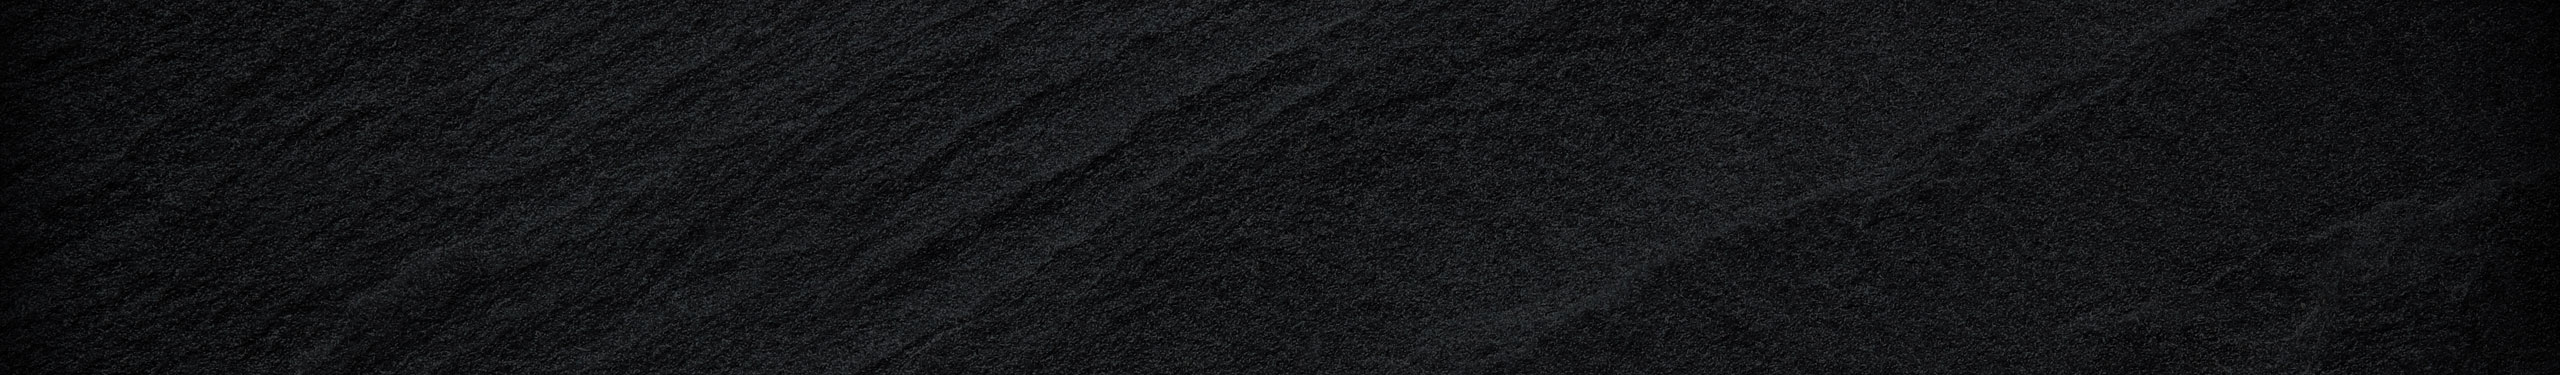 Black Granite Surface